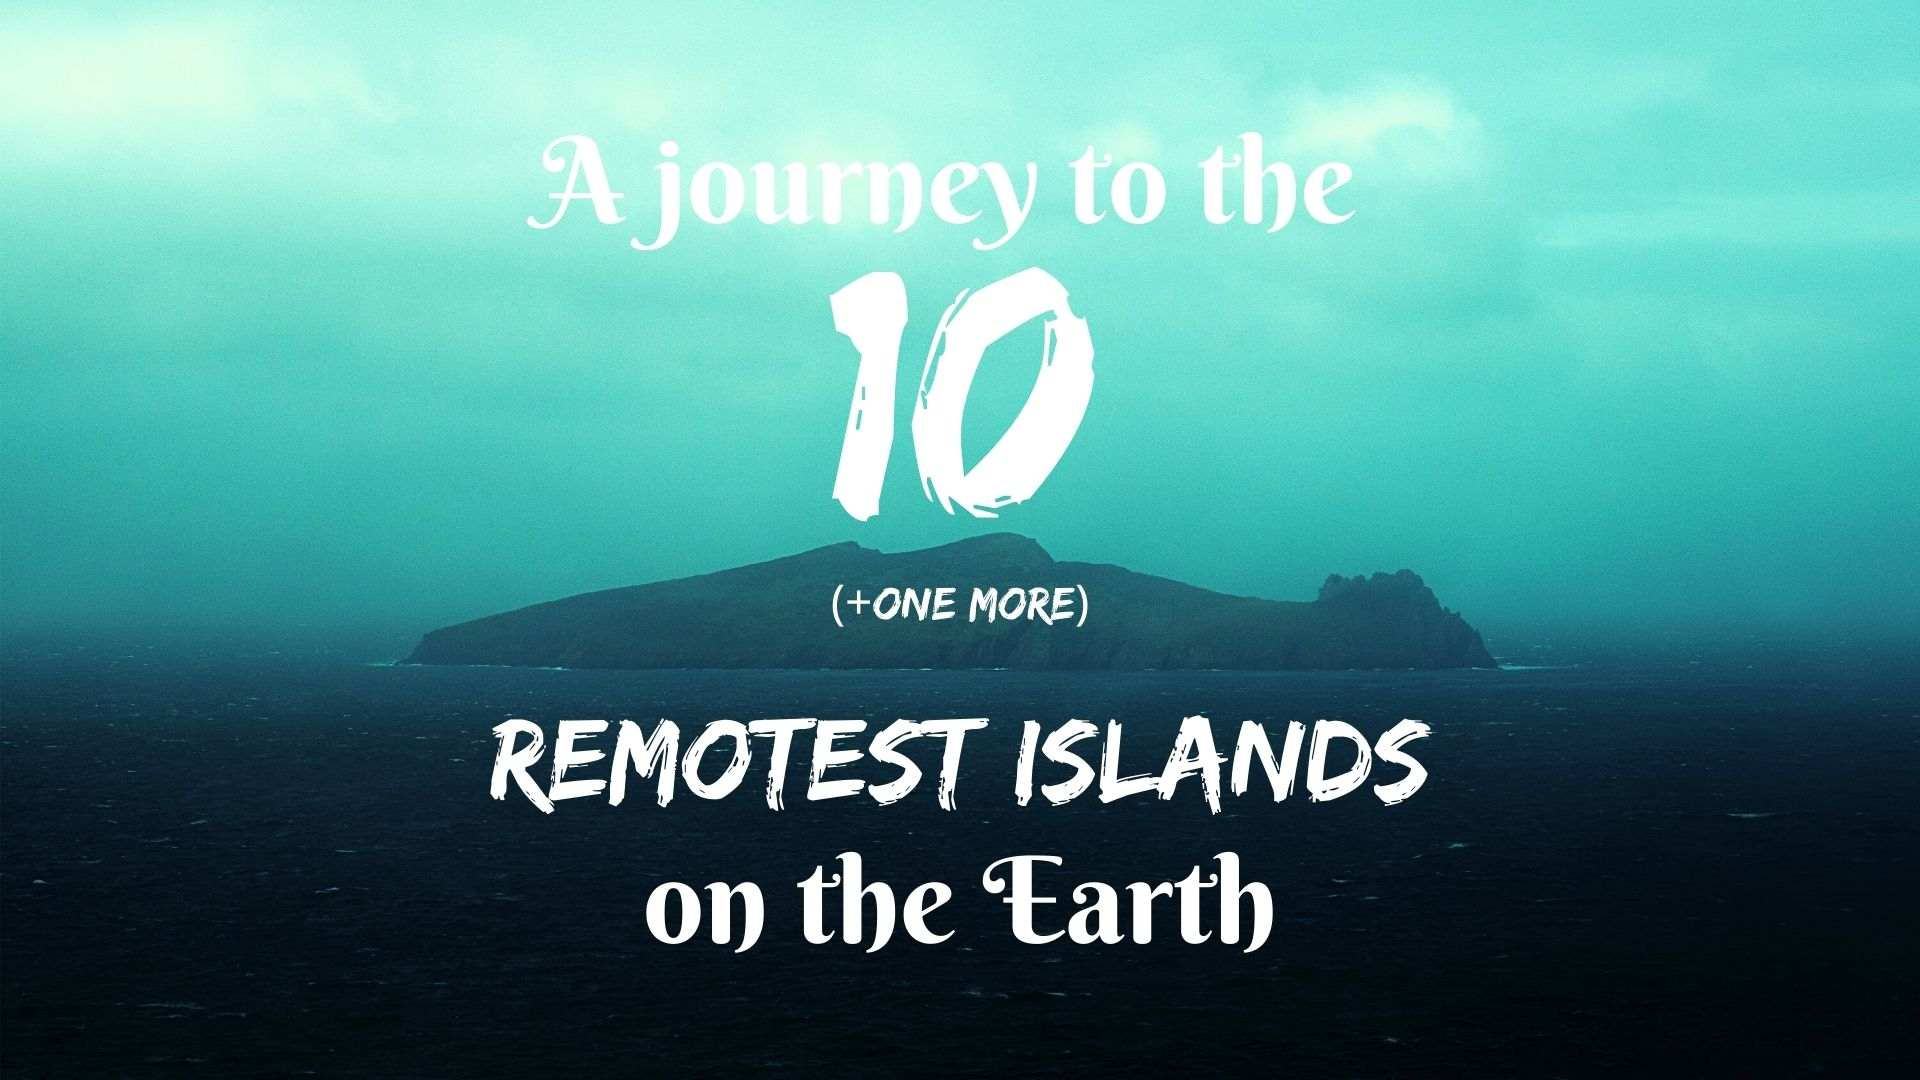 A journey to the 10 remotest islands on the Earth